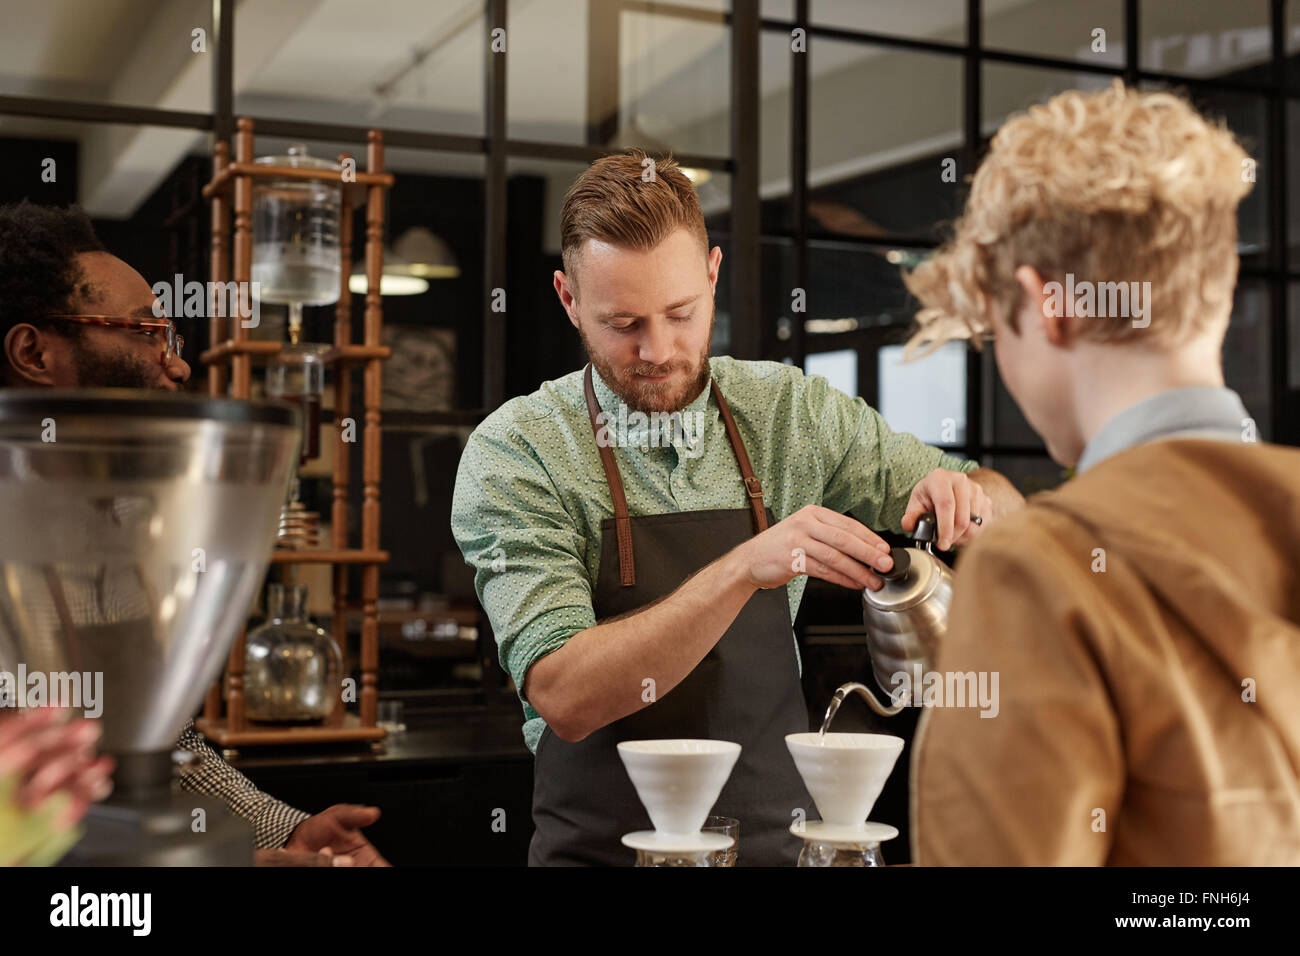 Barista pouring fresh coffee through filter in modern cafe - Stock Image